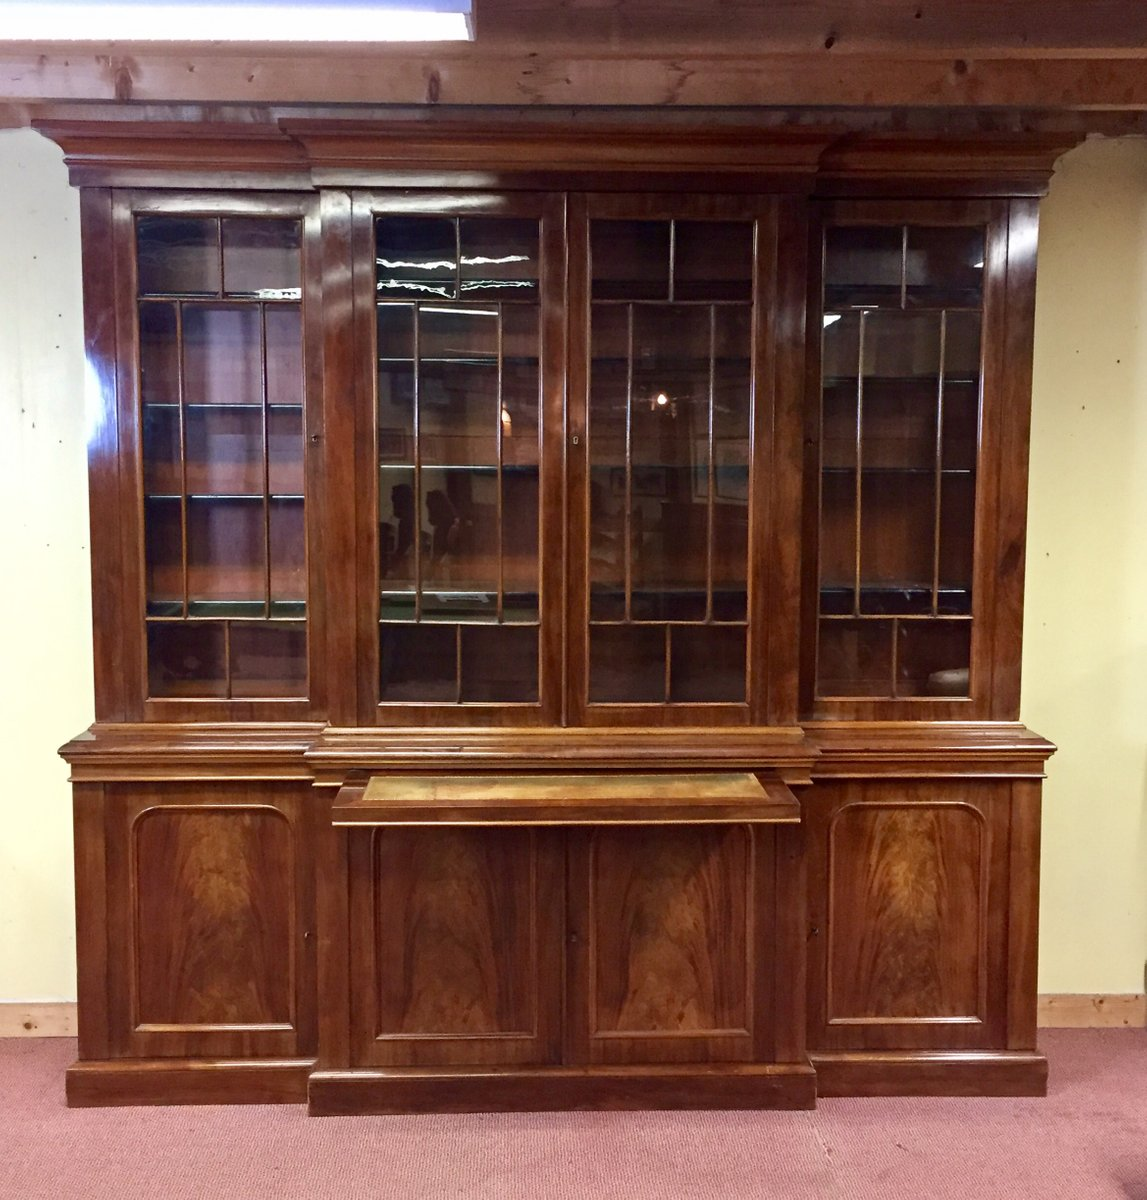 Victorian Antique Display Cabinet in Mahogany - Victorian Antique Display Cabinet In Mahogany For Sale At Pamono